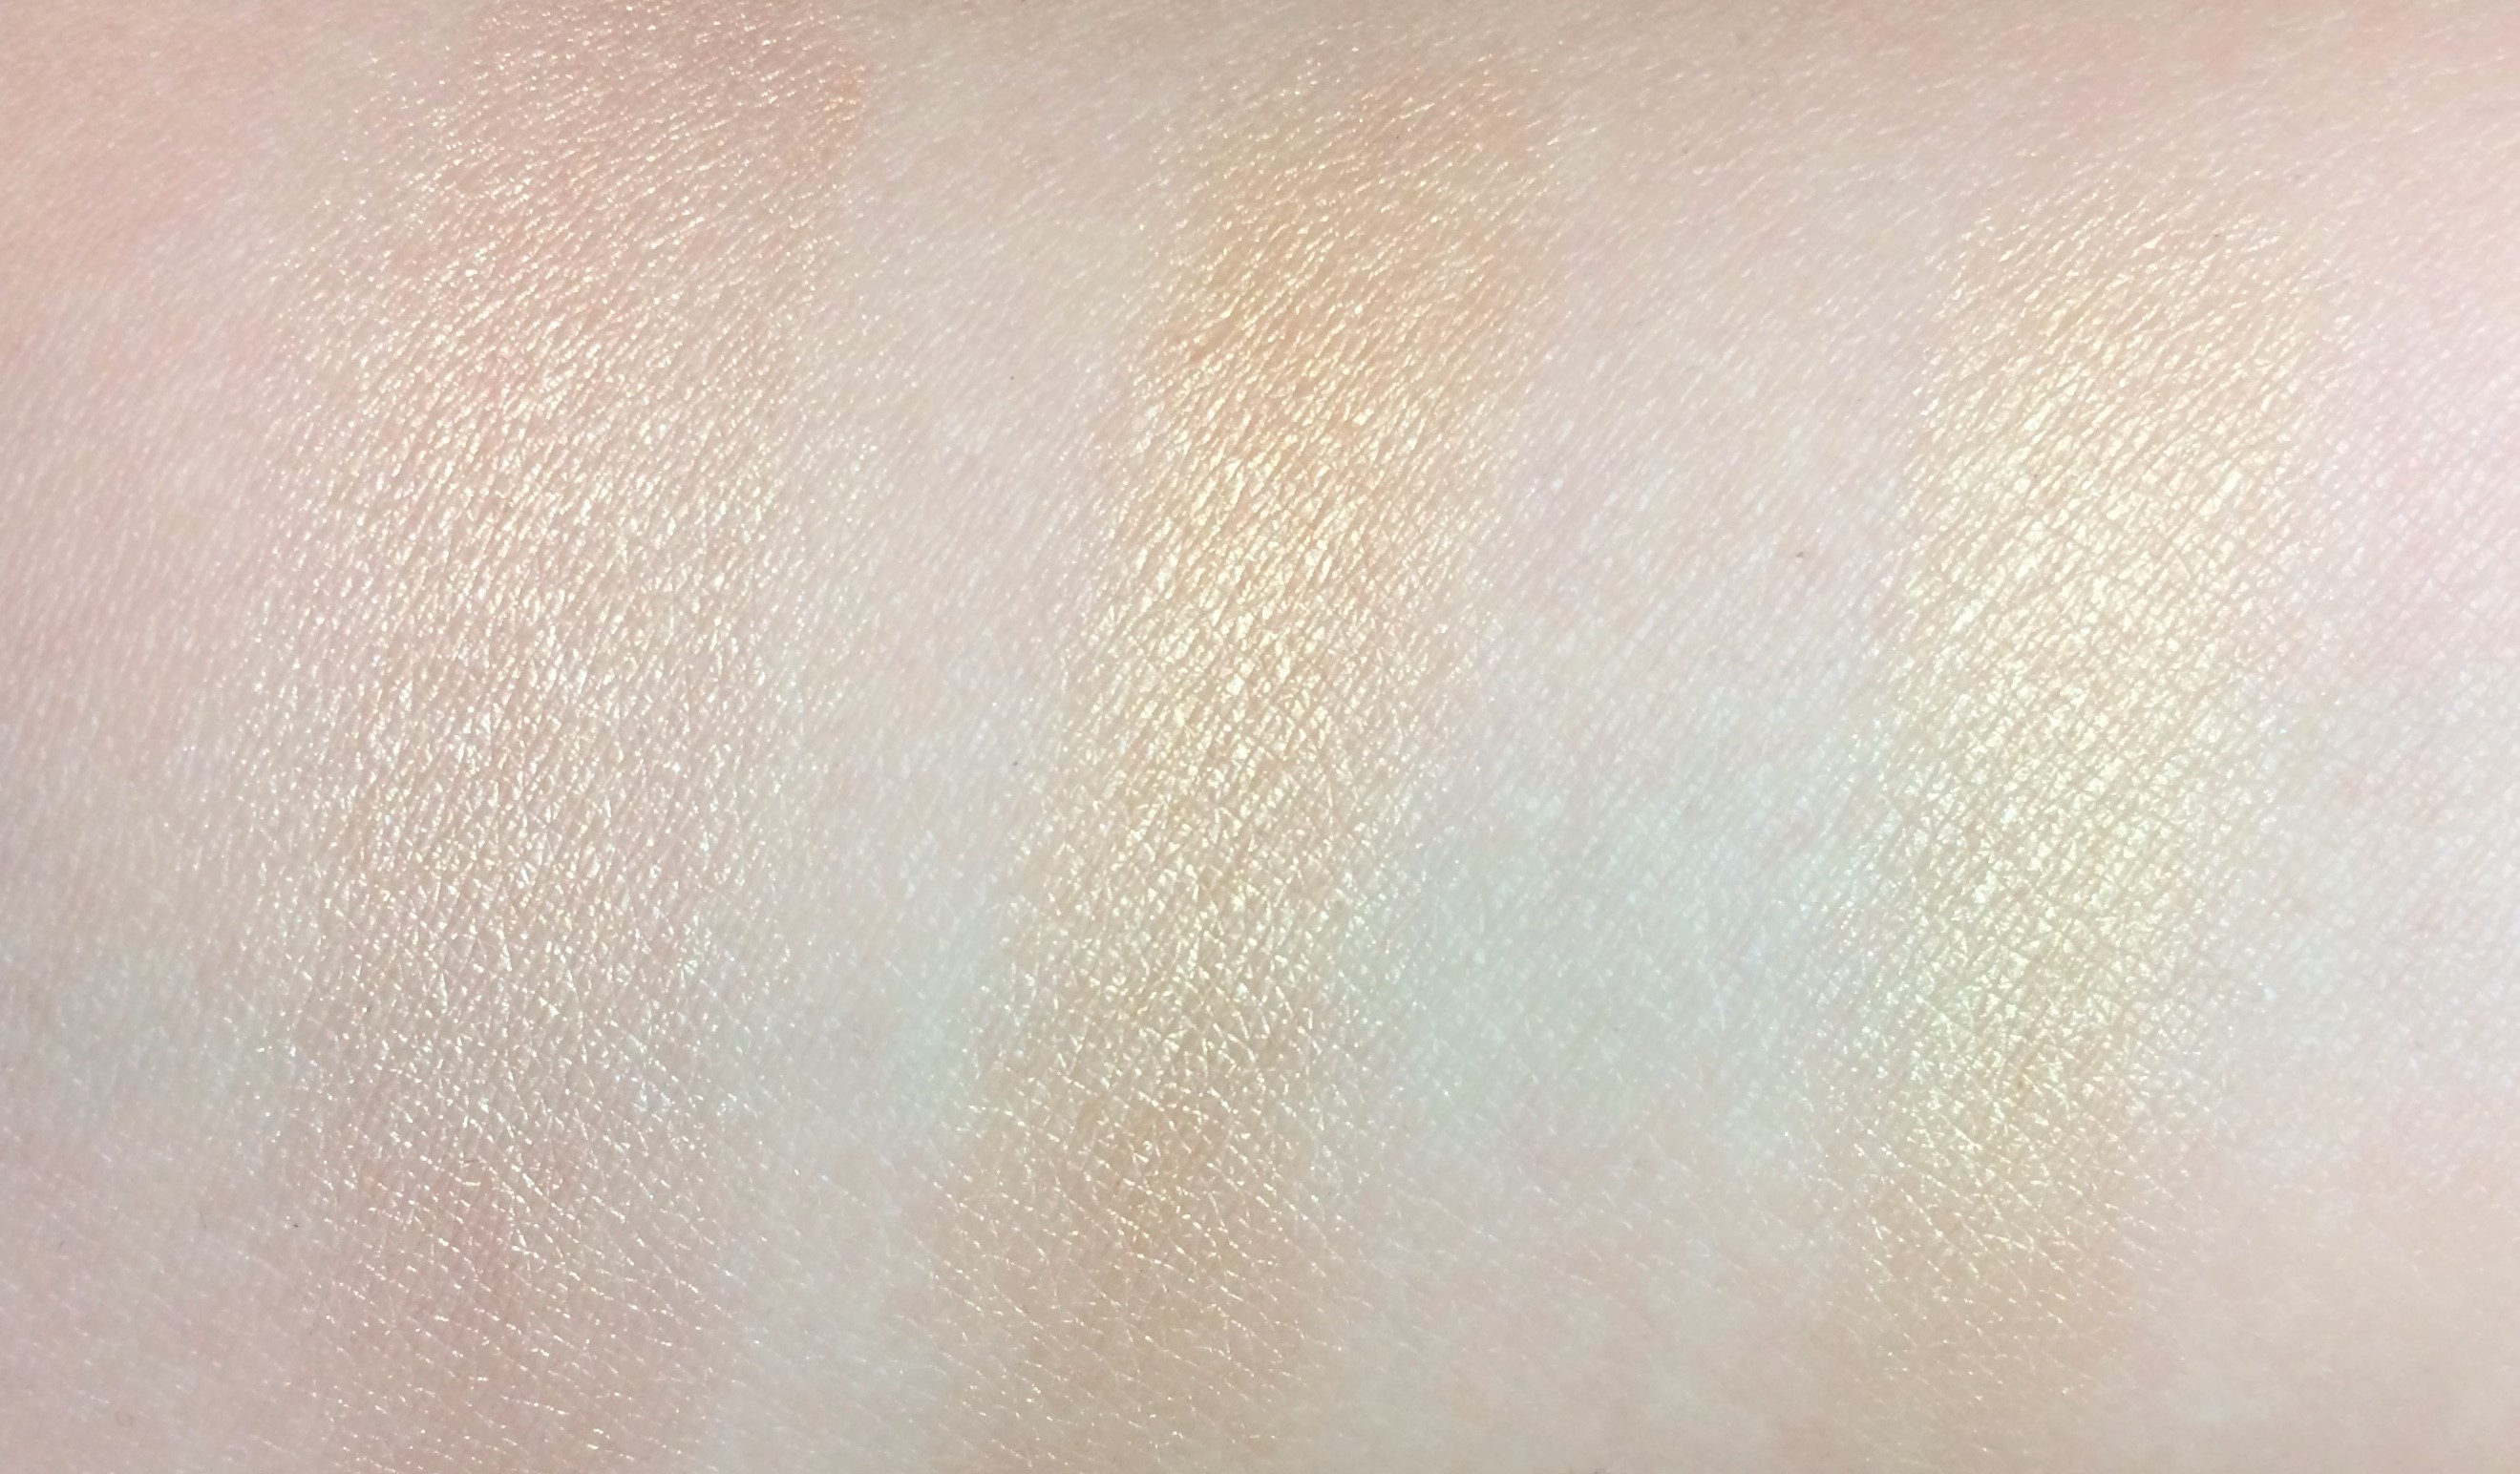 Recensione Maybelline Molten Gold Master Chrome Metallic Highlighter.jpg